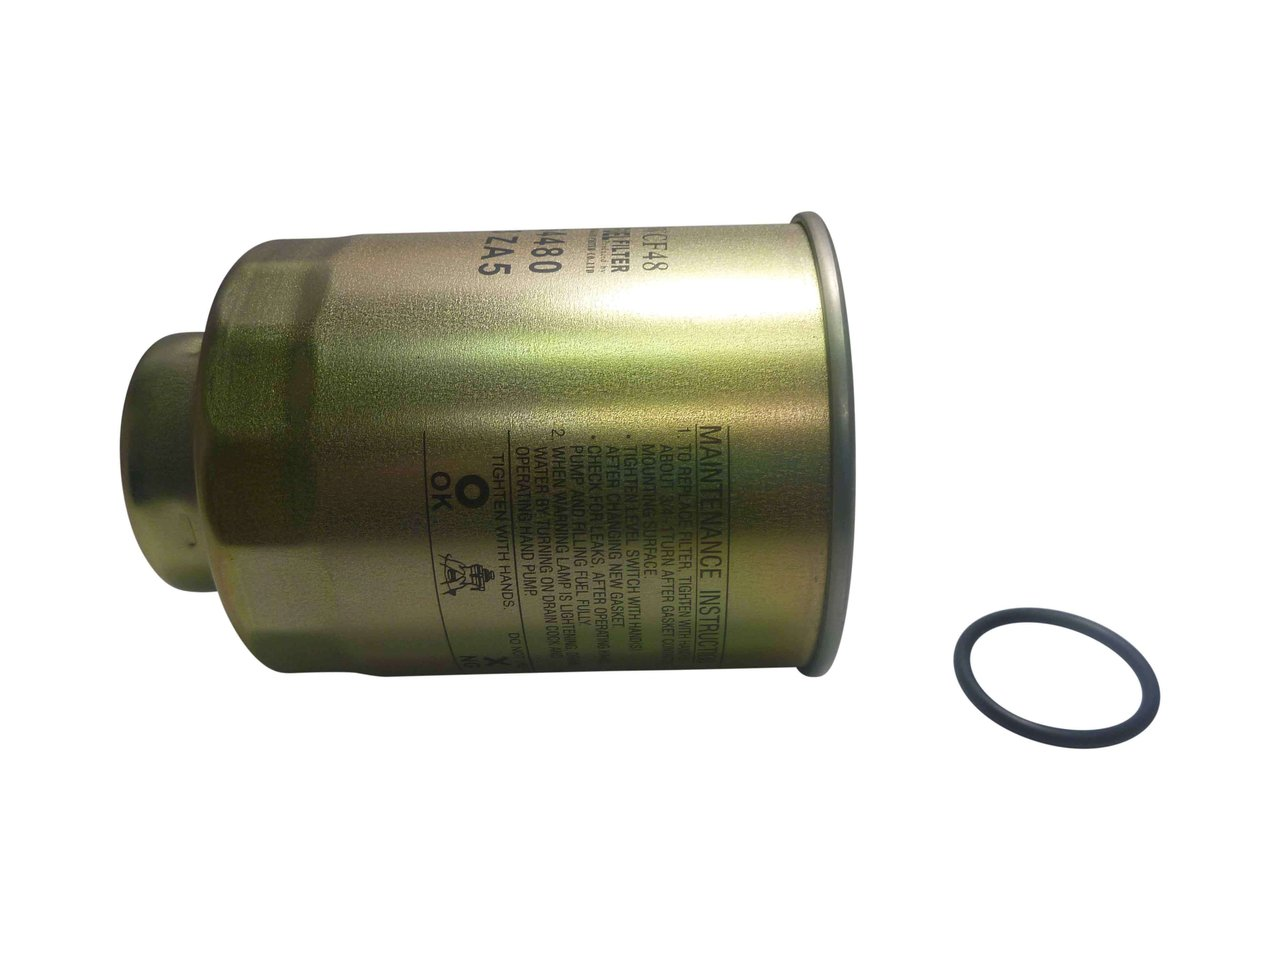 spin on diesel fuel filter toyota hilux landcruiser and prado 1994 toyota fuel filter toyota fuel filter